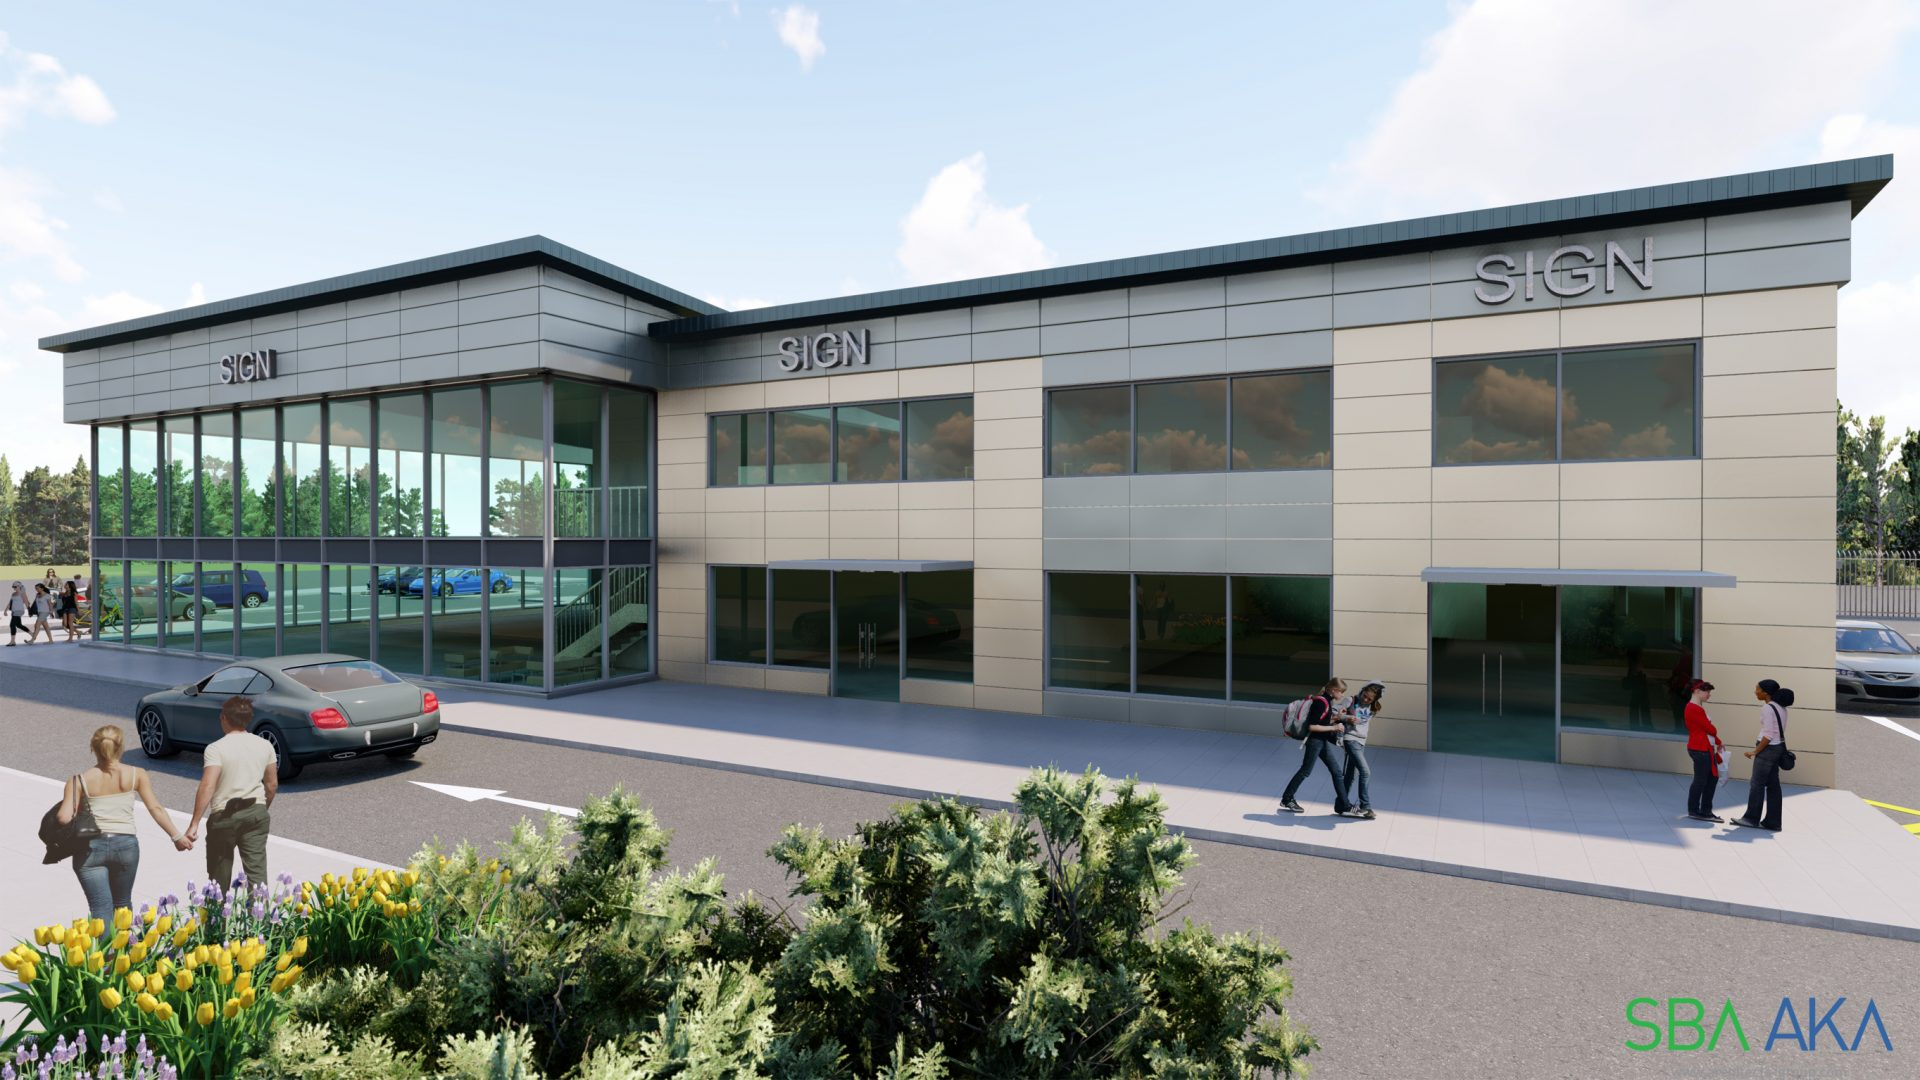 SBA Unveil Plans For New Motorbike Showroom And Retail Units In Gateshead